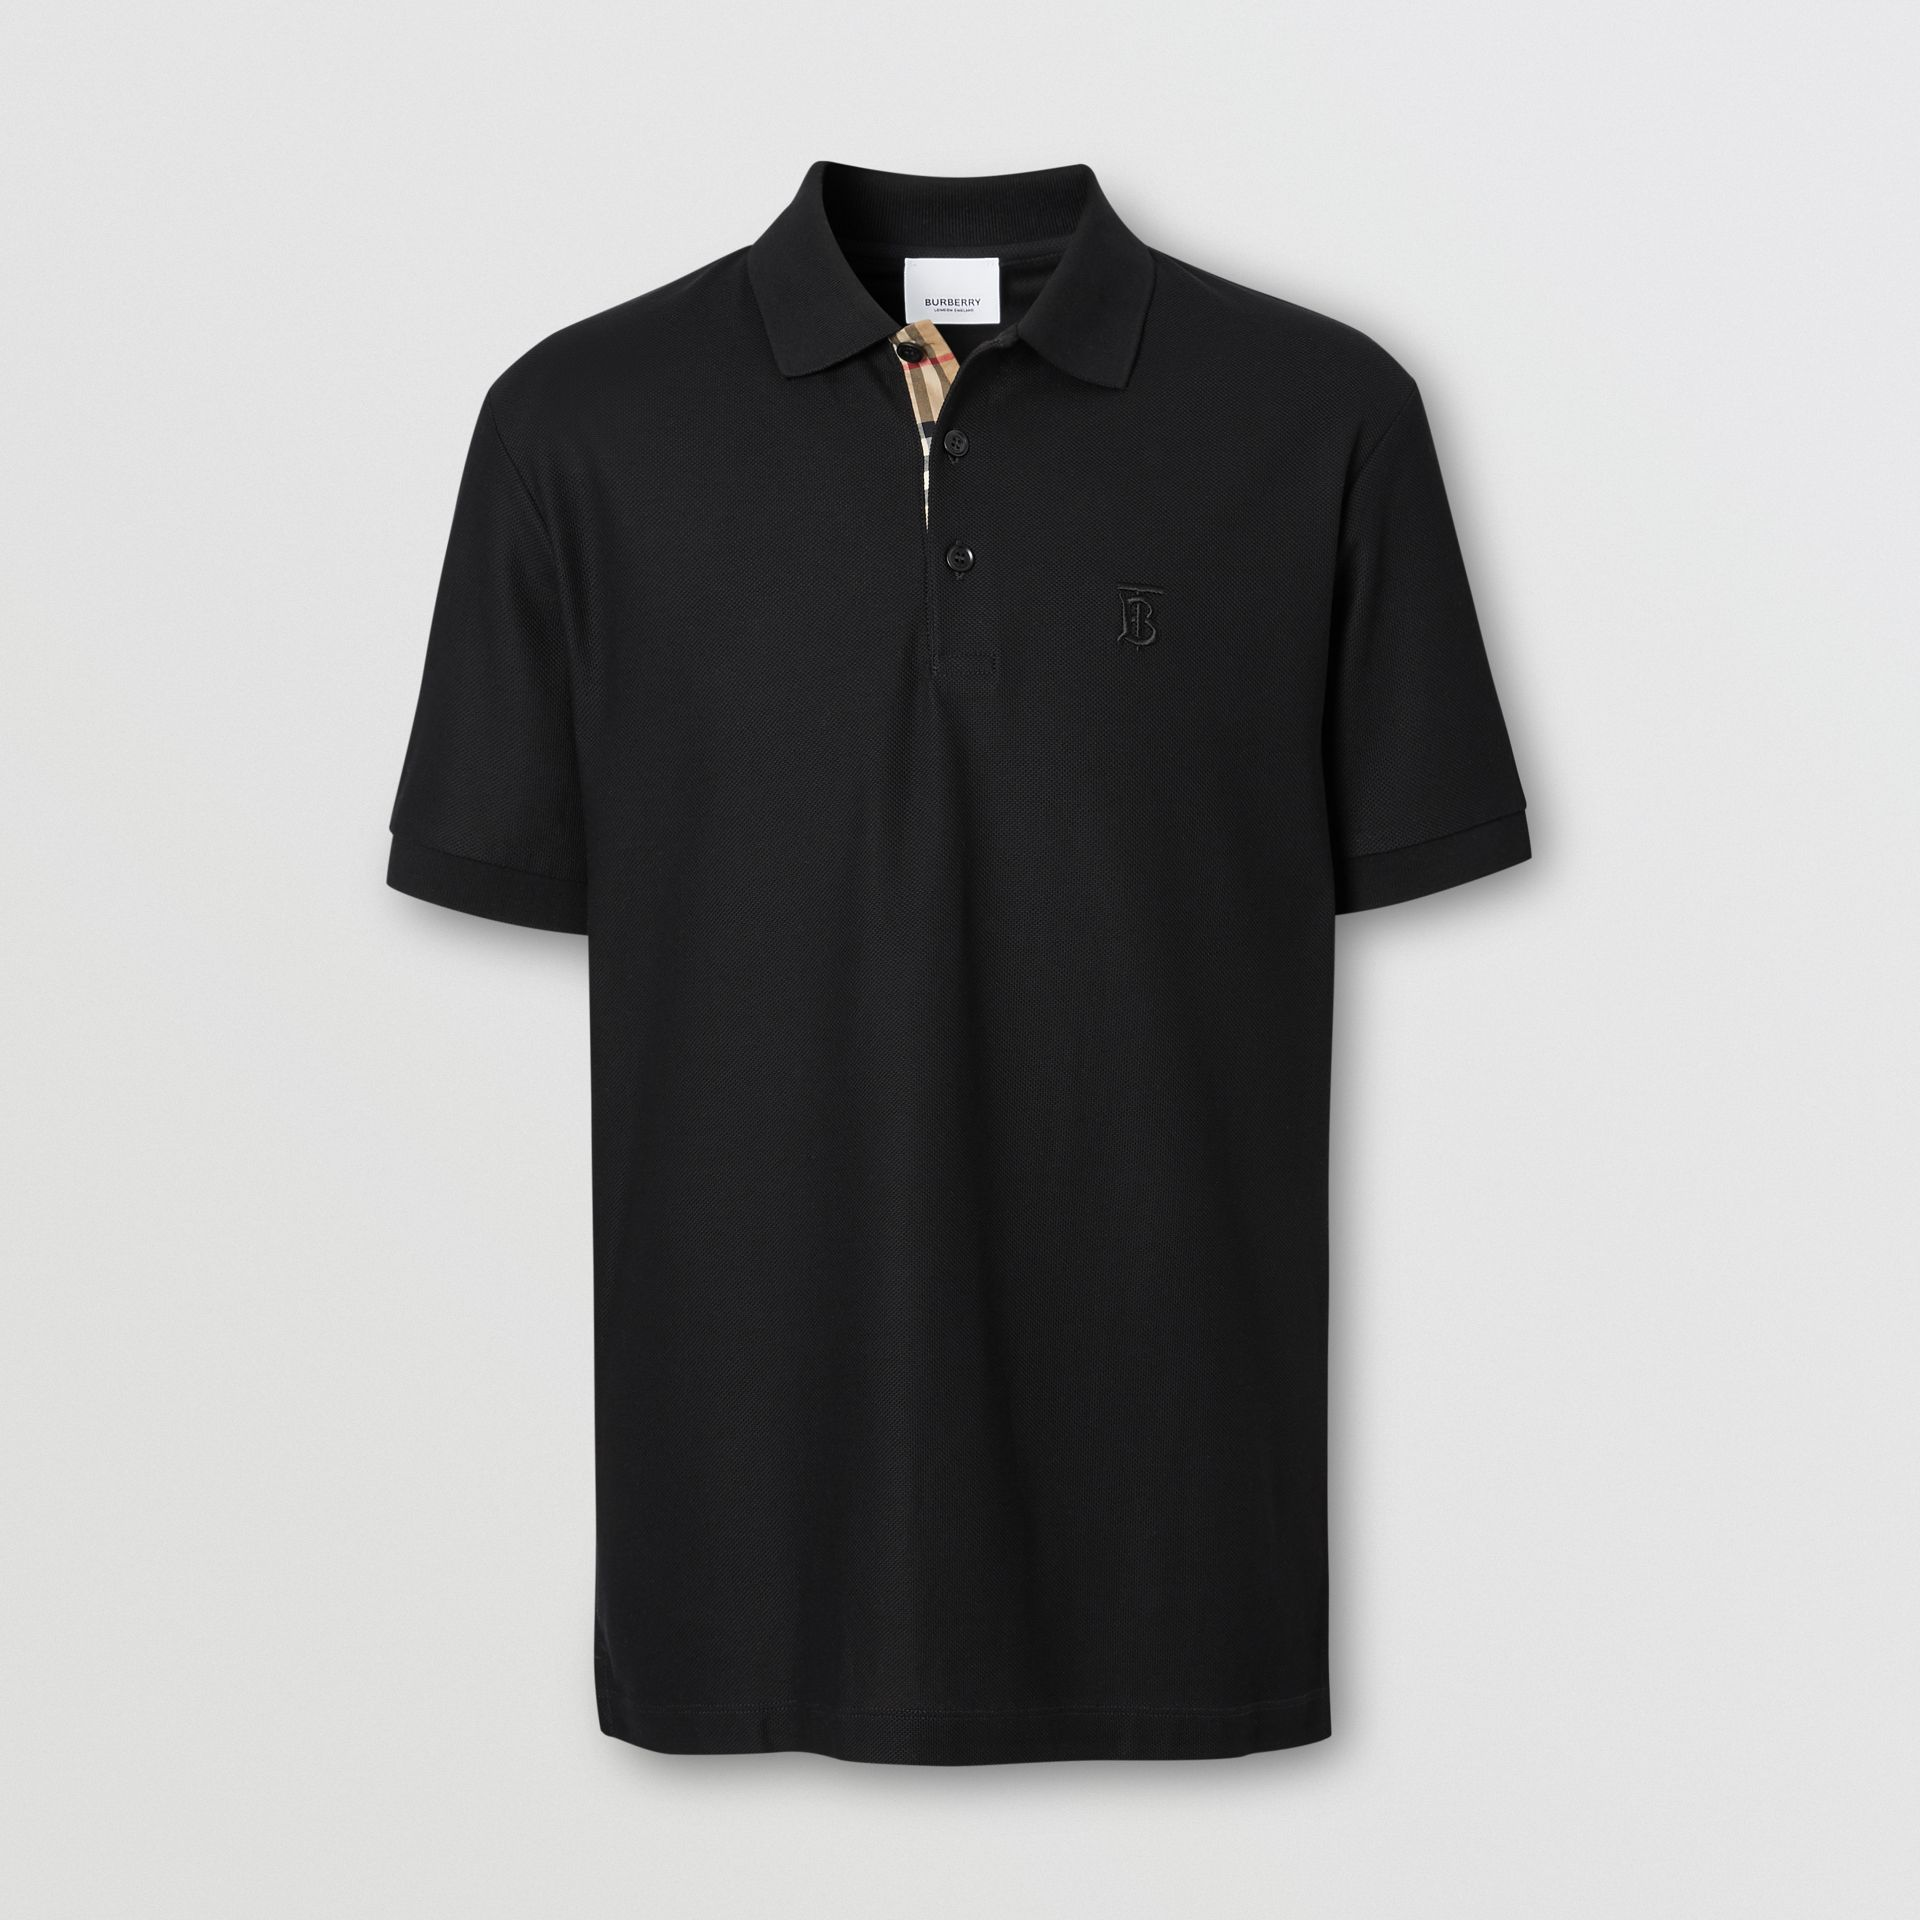 Monogram Motif Cotton Piqué Polo Shirt in Black - Men | Burberry Singapore - gallery image 3